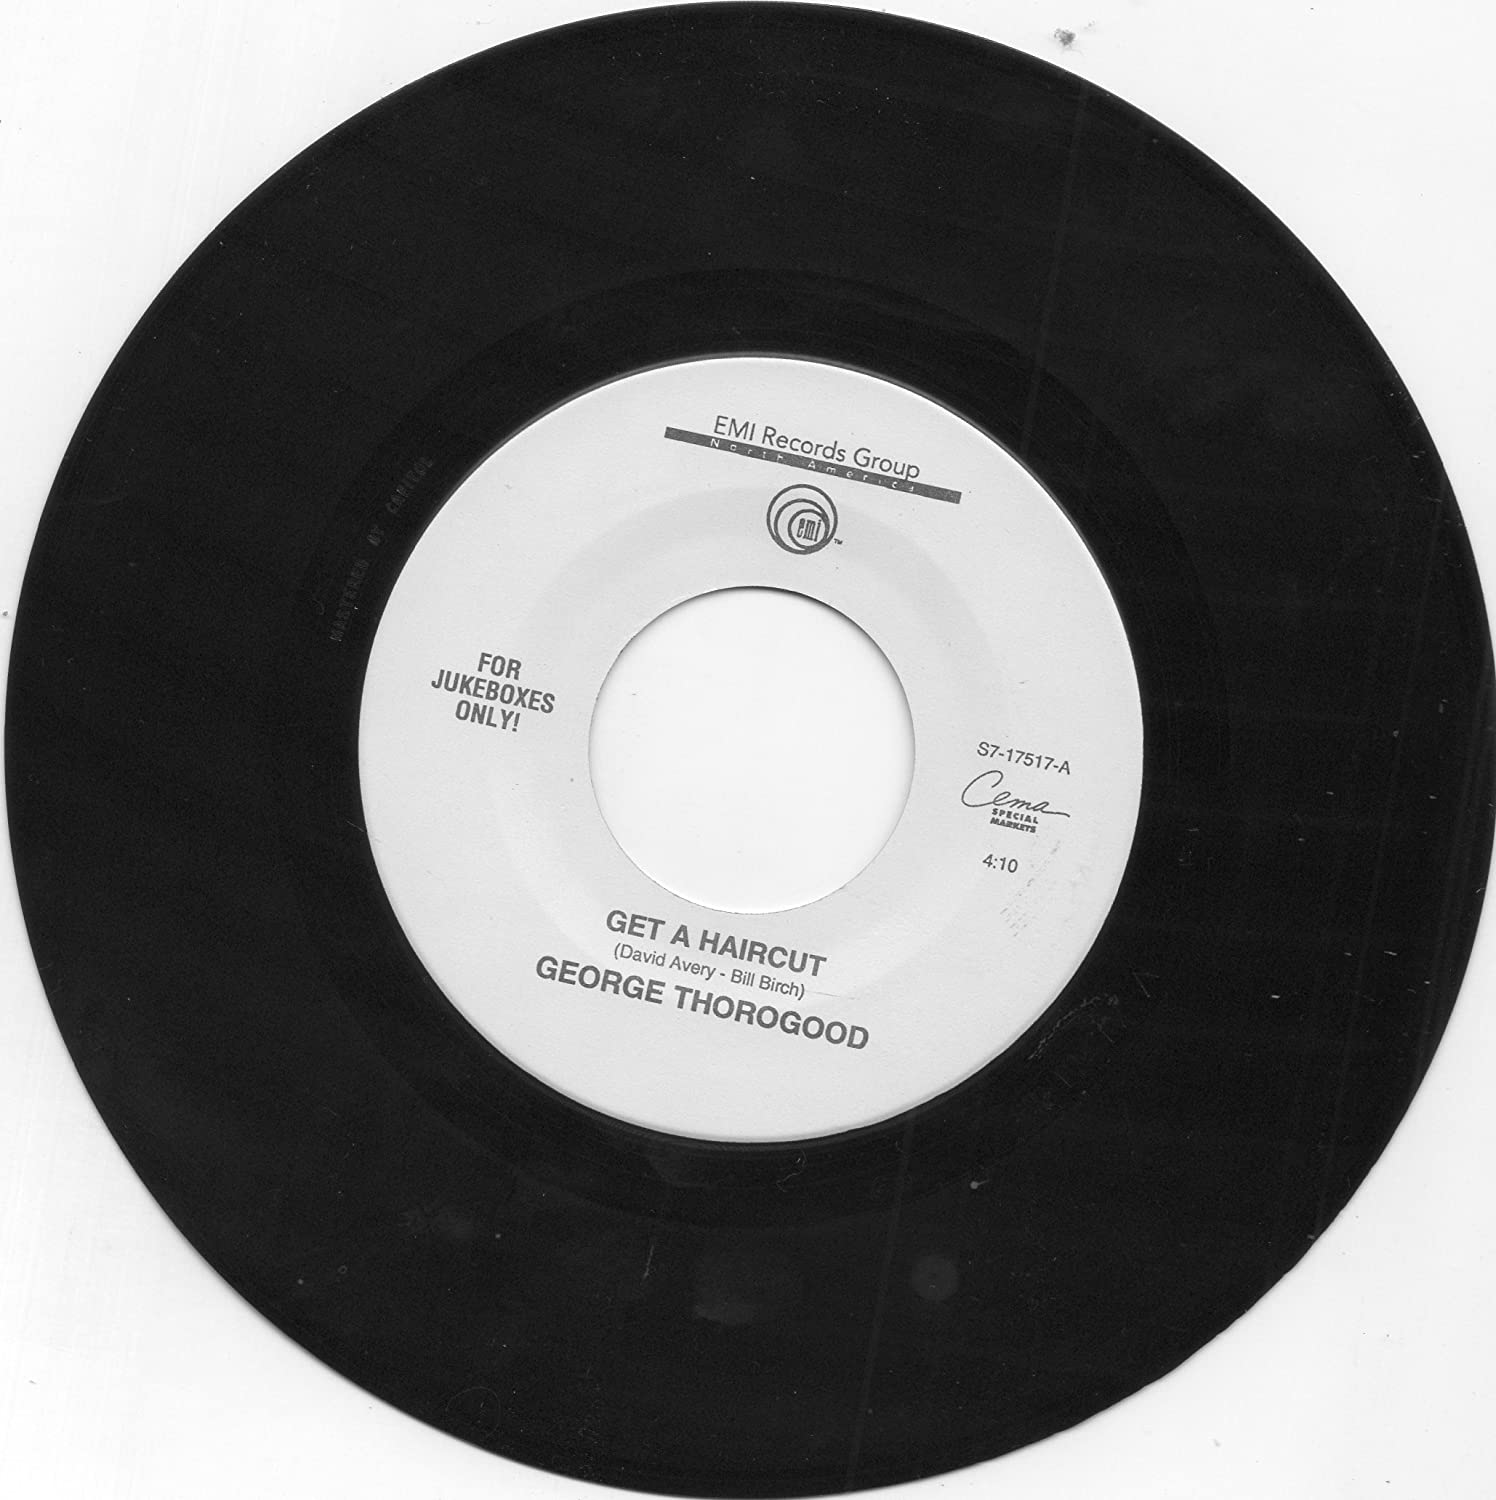 George Thorogood George Thorogood 45 Rpm Gone Dead Train Get A